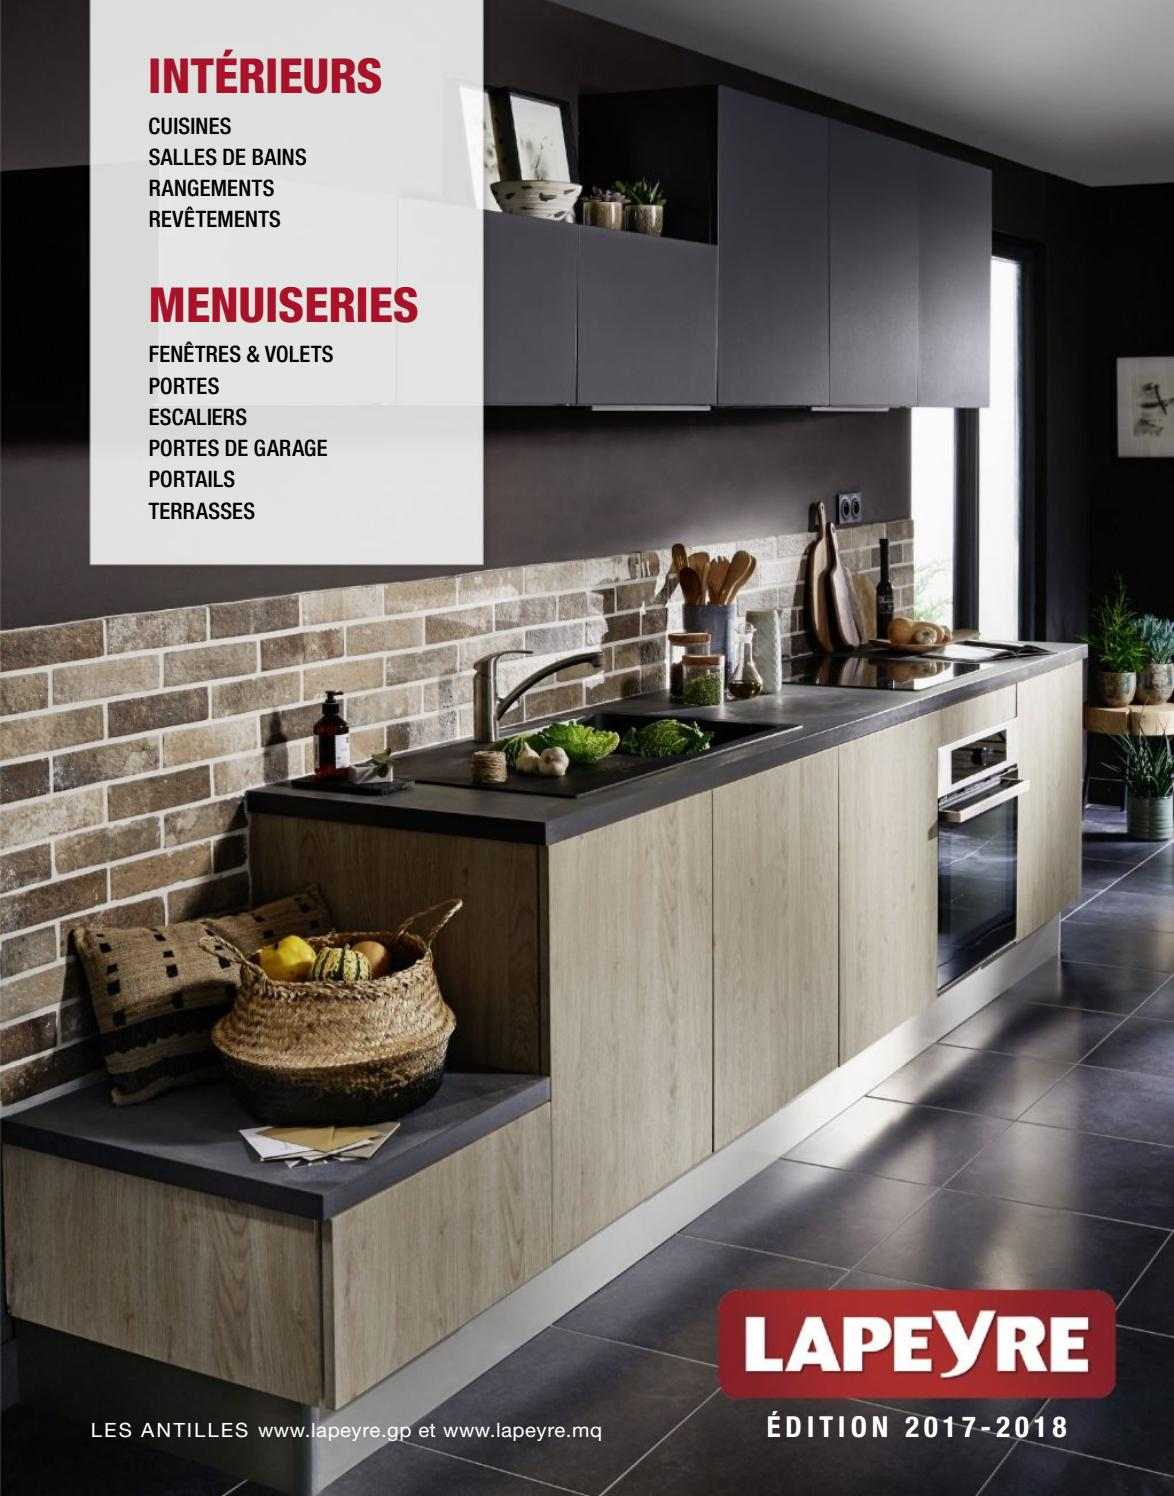 Magasin Lapeyre Store Banne Lapeyre Antilles Catalogue 2017 2018 By Momentum Média Issuu